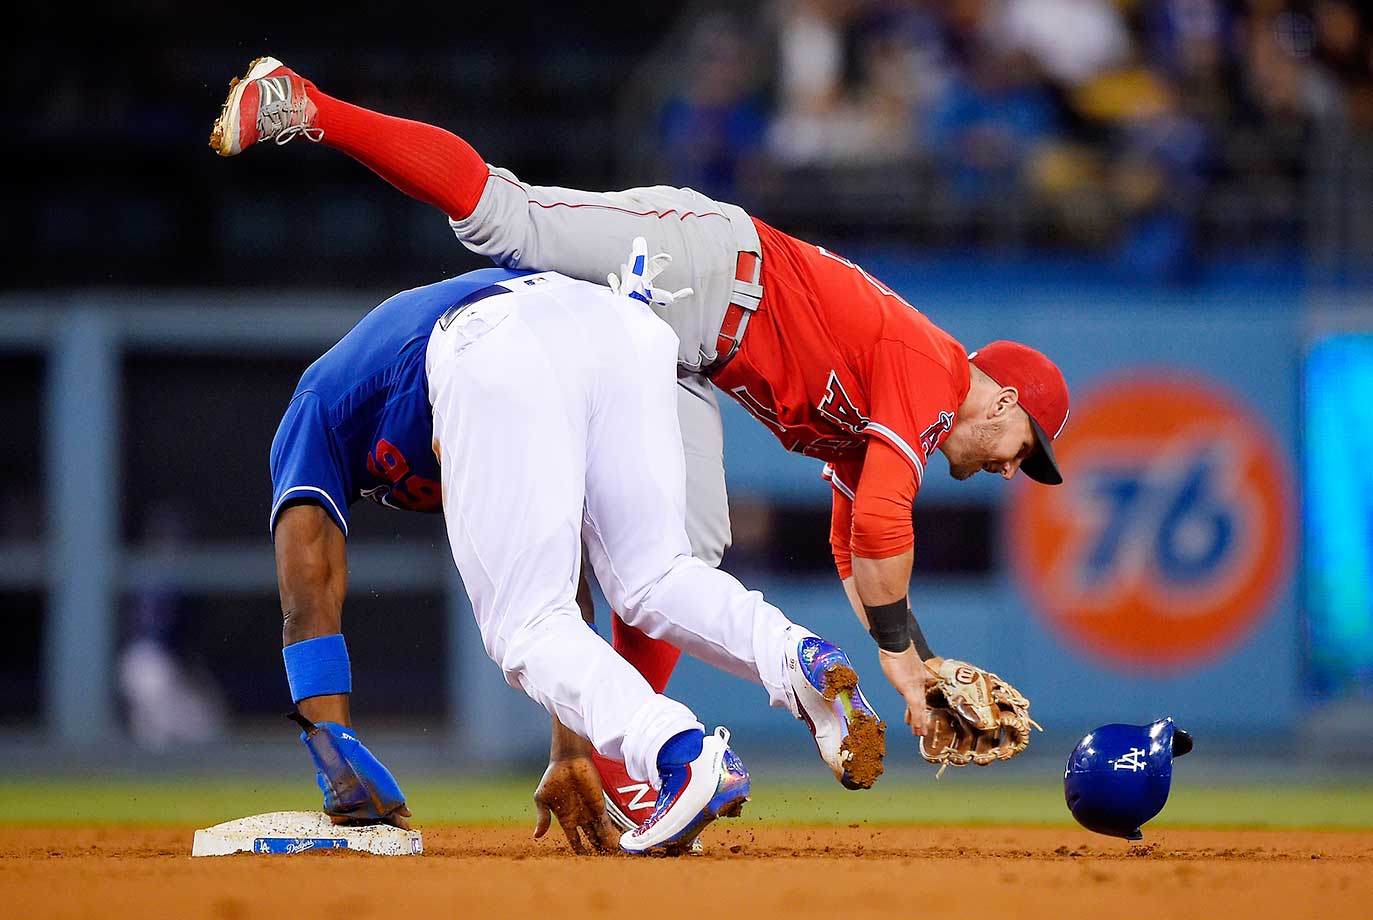 Angels second baseman Johnny Giavotella is upended by Yasiel Puig of the Dodgers as Puig steals second and heads to third on a throwing error by catcher Carlos Perez.